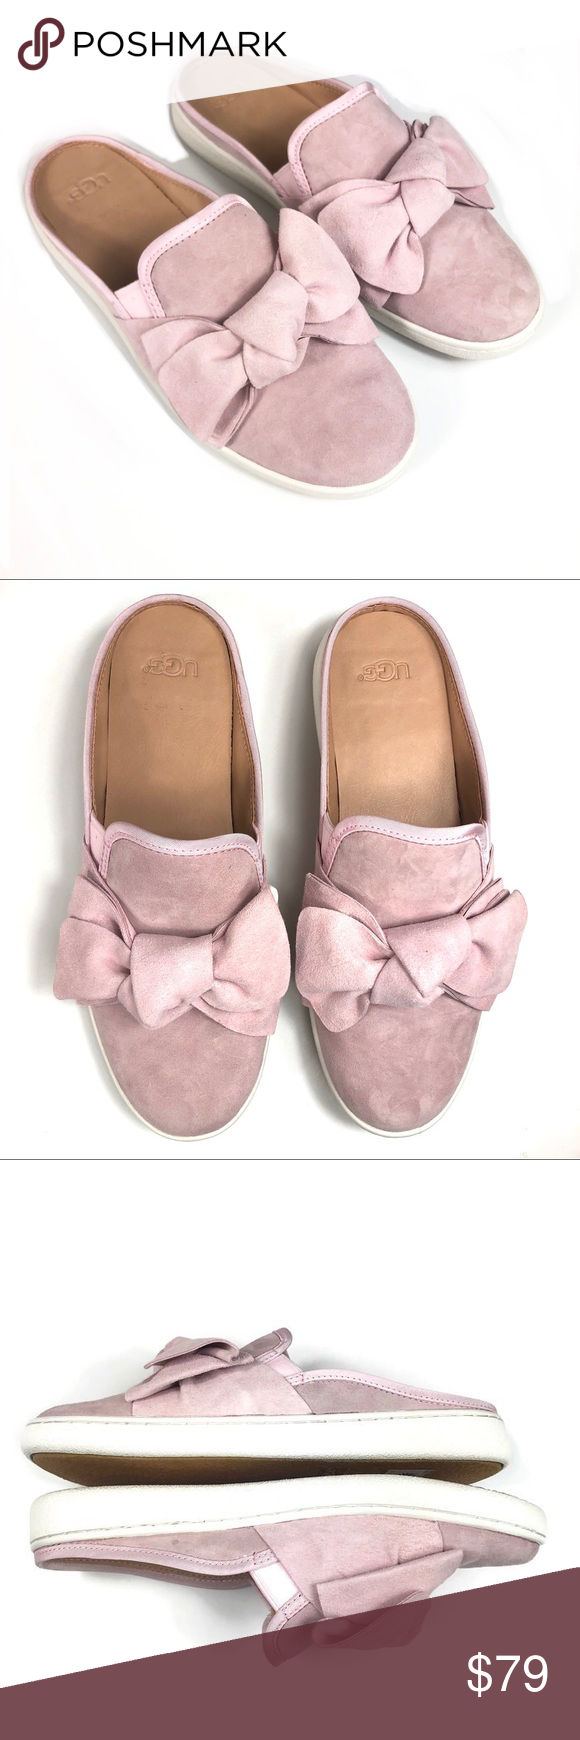 New UGG Luci Bow Sneaker Mule Pink Sz 9